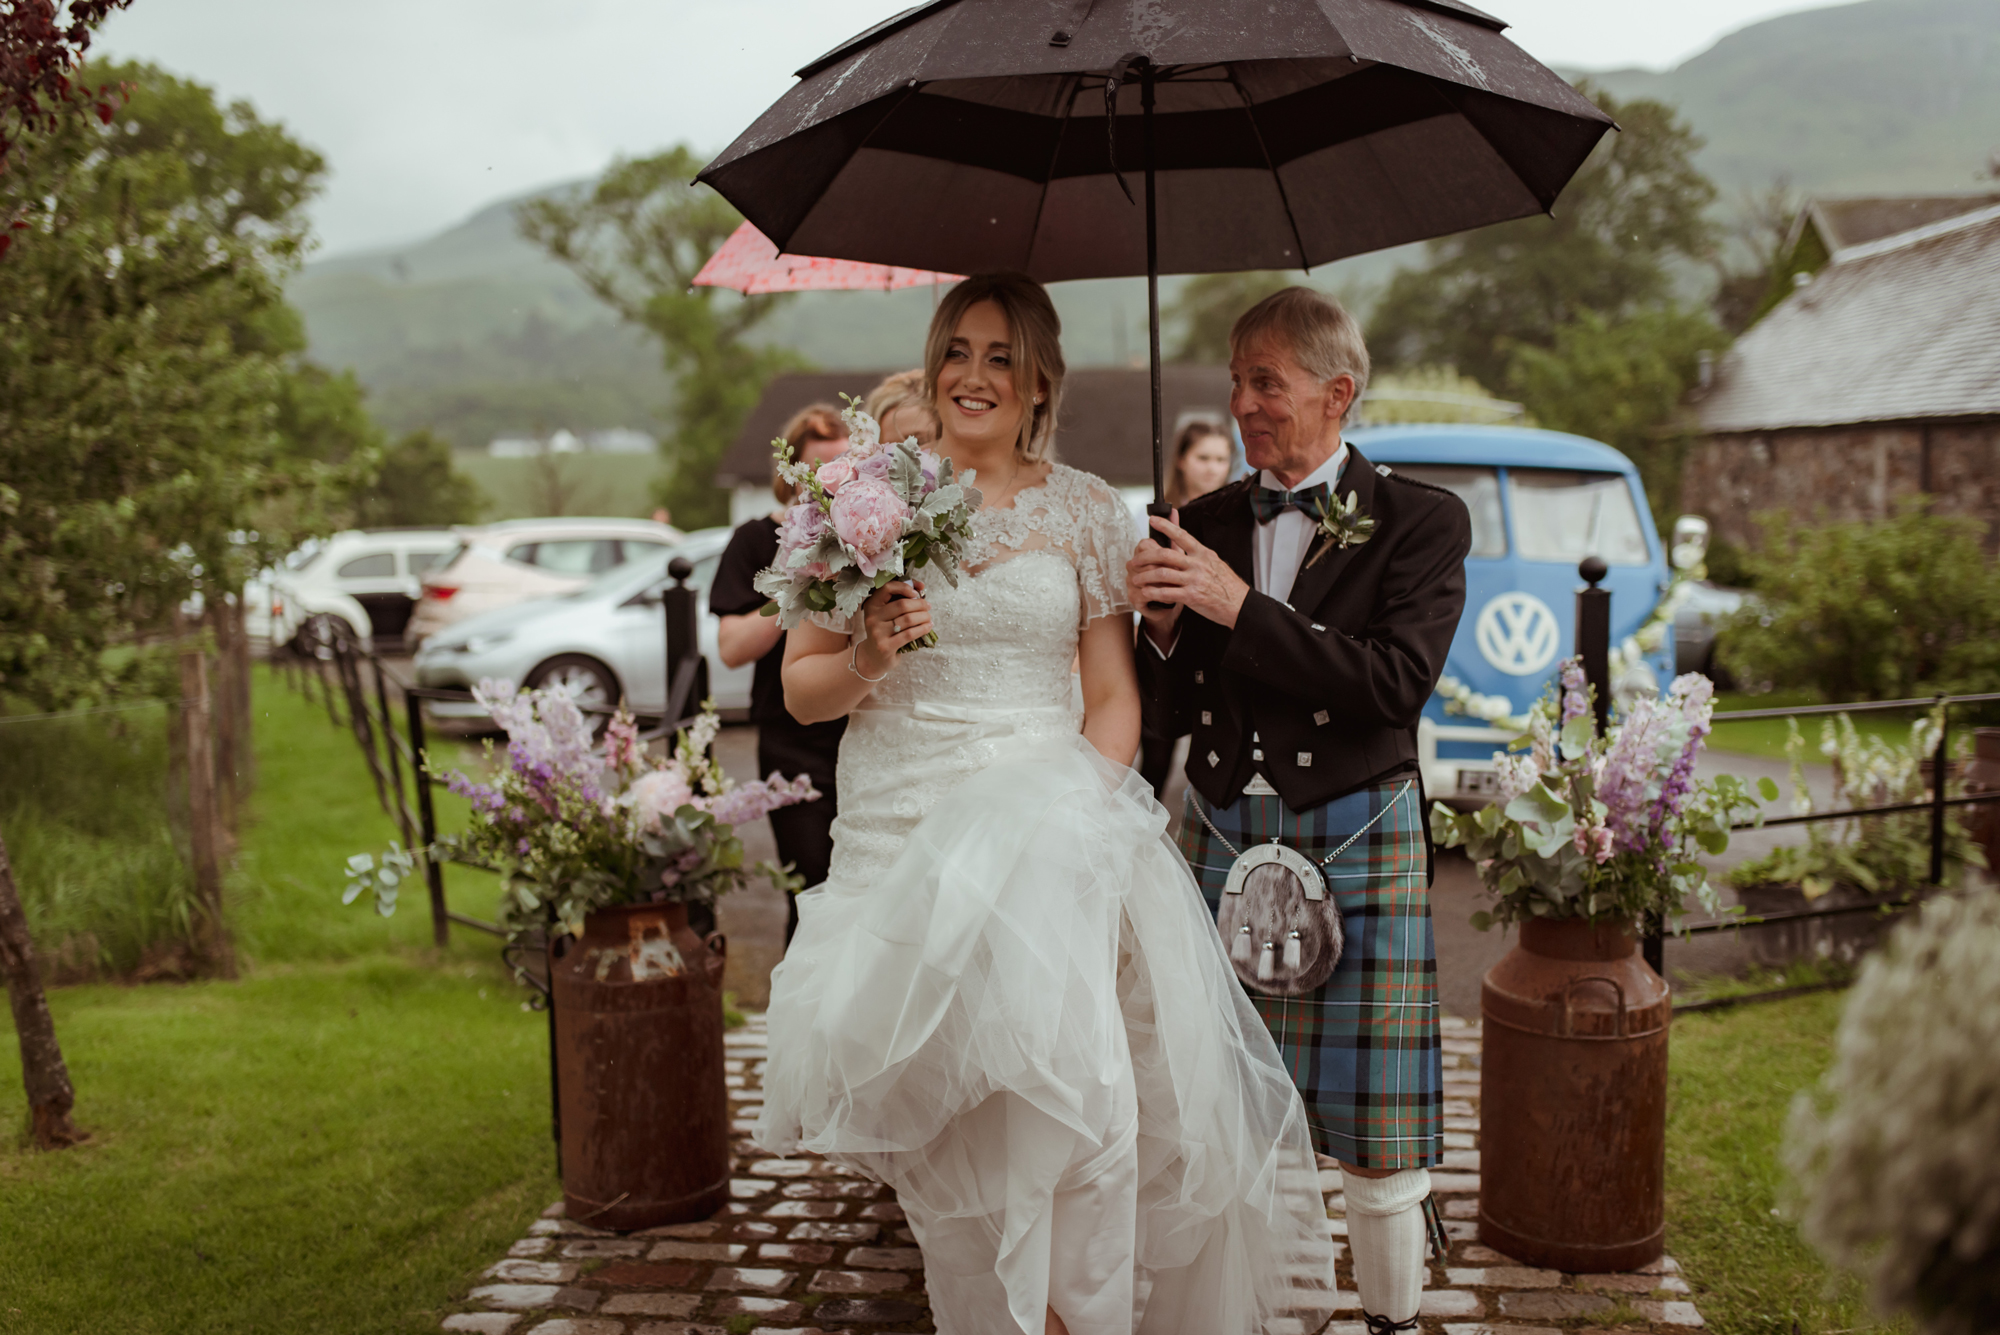 farm-wedding-venues-glasgow-scotland.jpg